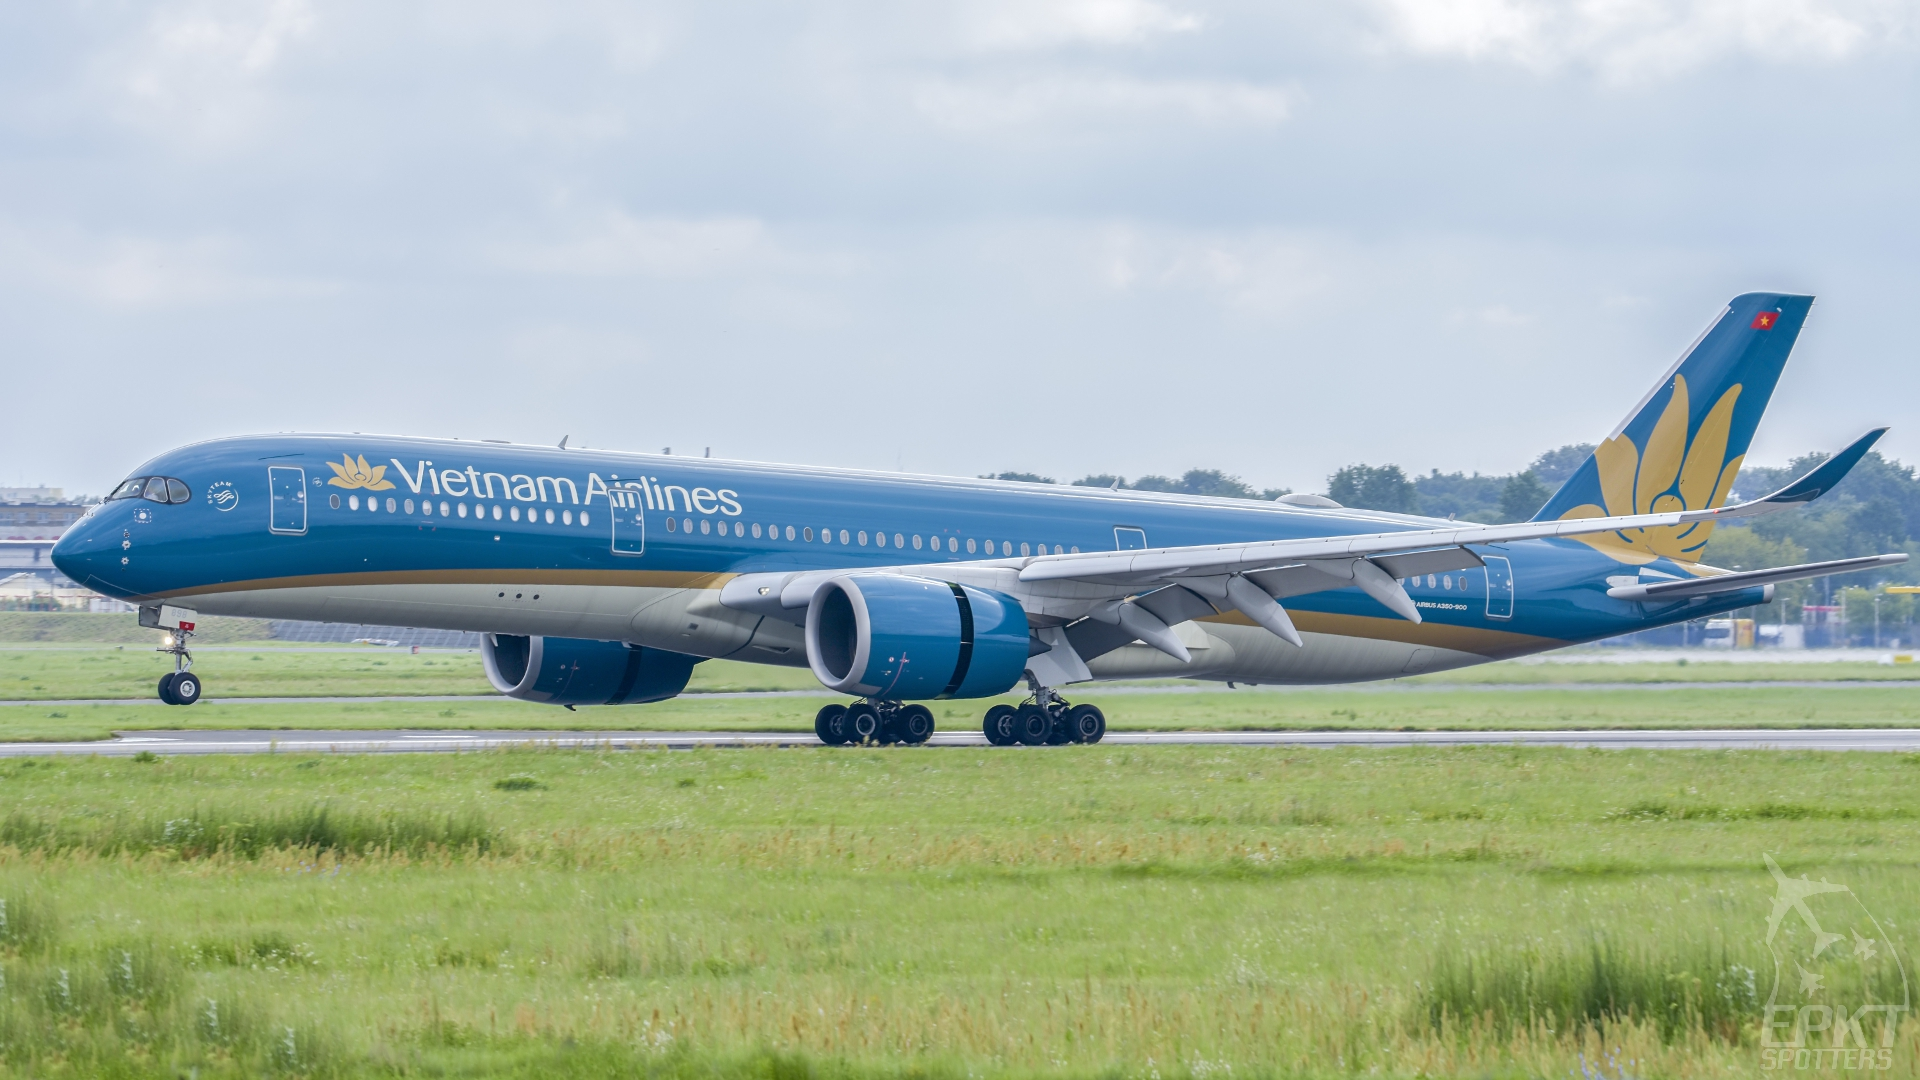 VN-A898 - Airbus A350- -941 (Vietnam Airlines) / Chopin / Okecie - Warsaw Poland [EPWA/WAW]